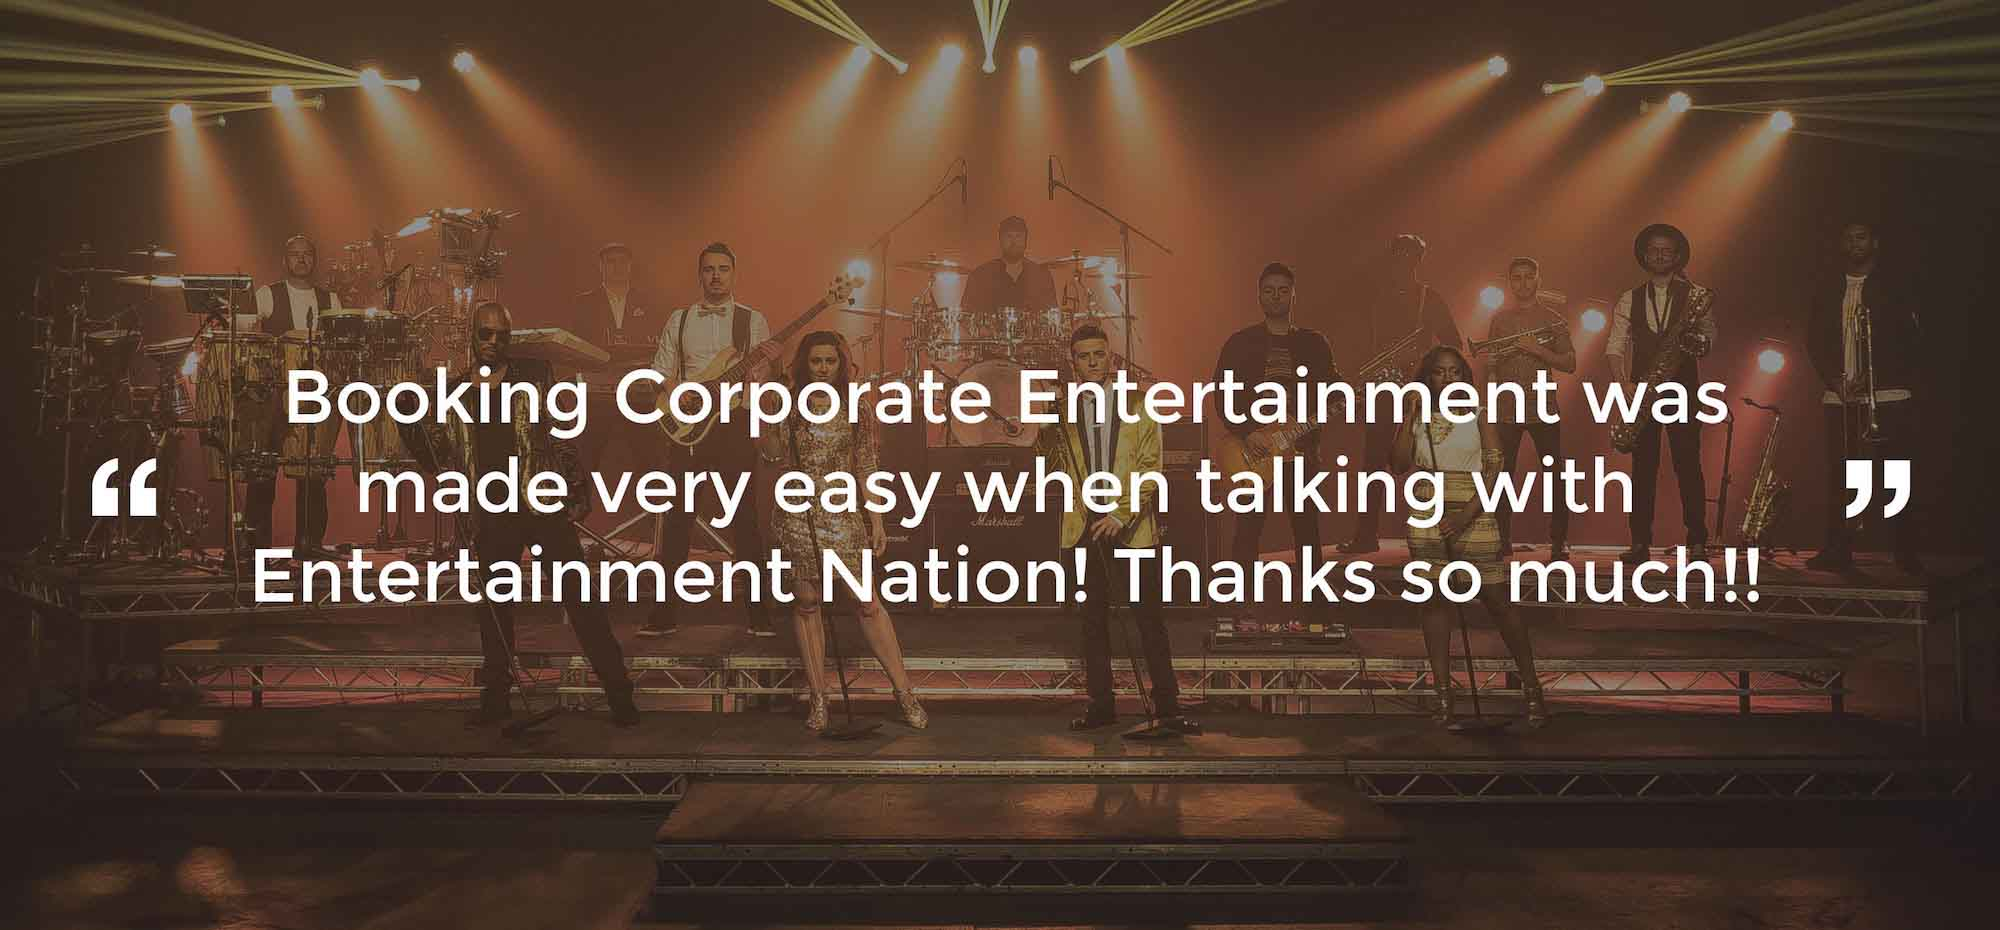 Client Review of Corporate Entertainment London